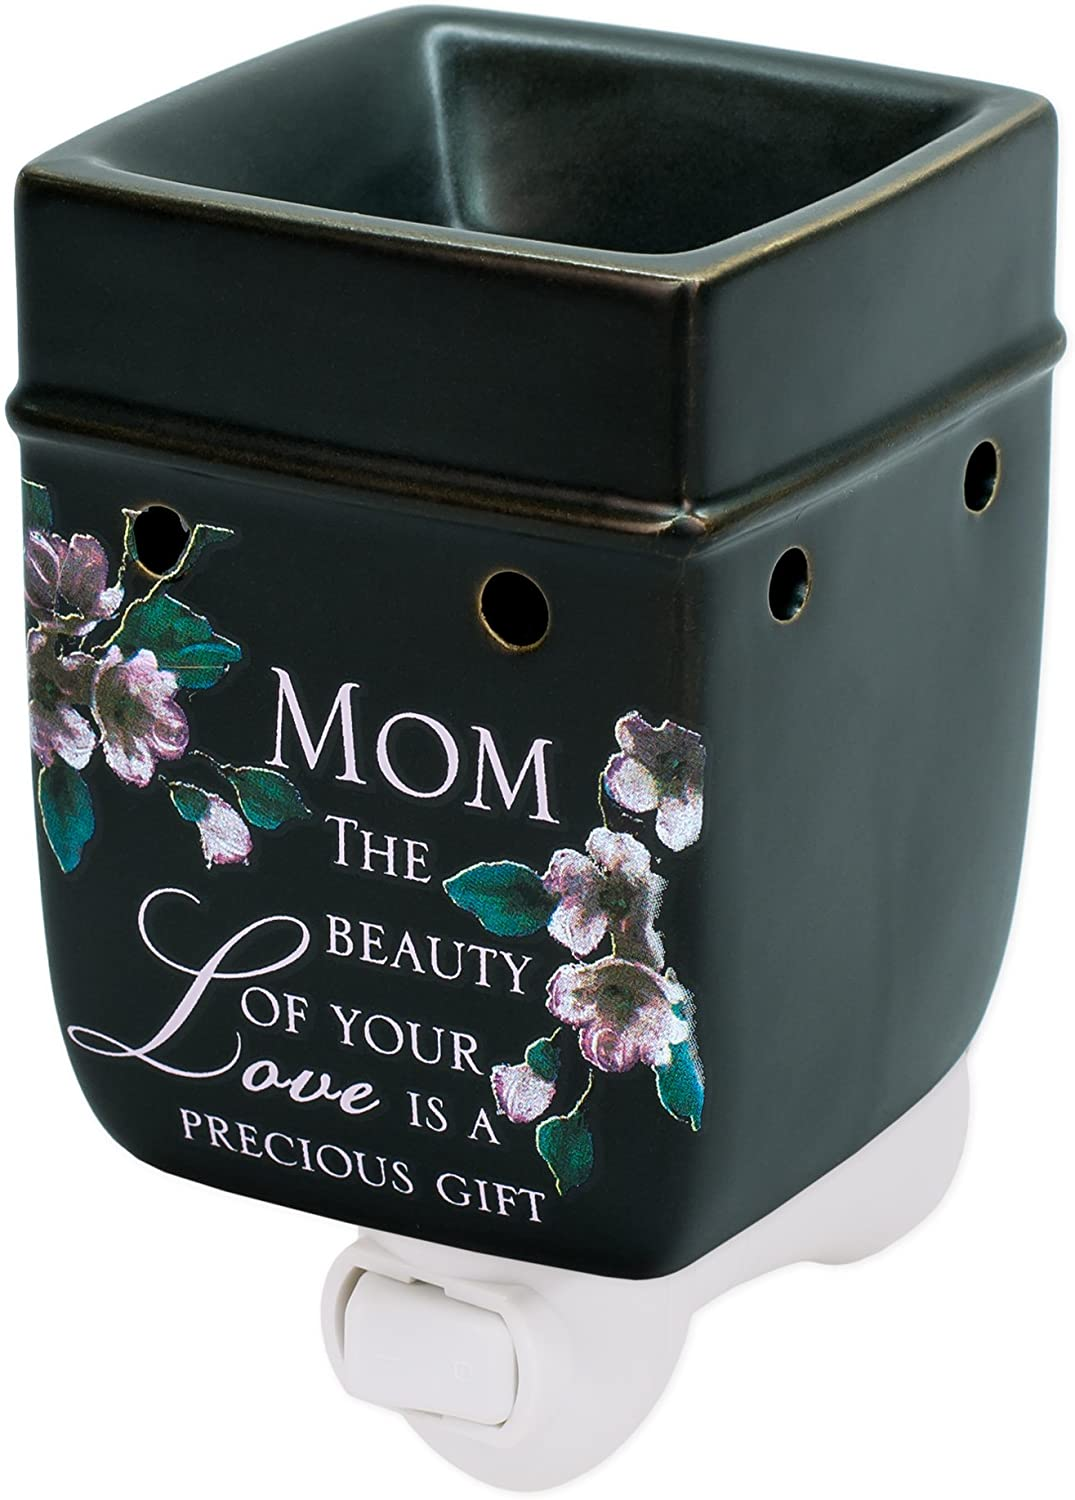 Elanze Designs Mom Beauty Love Black Ceramic Stoneware Electric Plug-in Outlet Wax and Oil Warmer